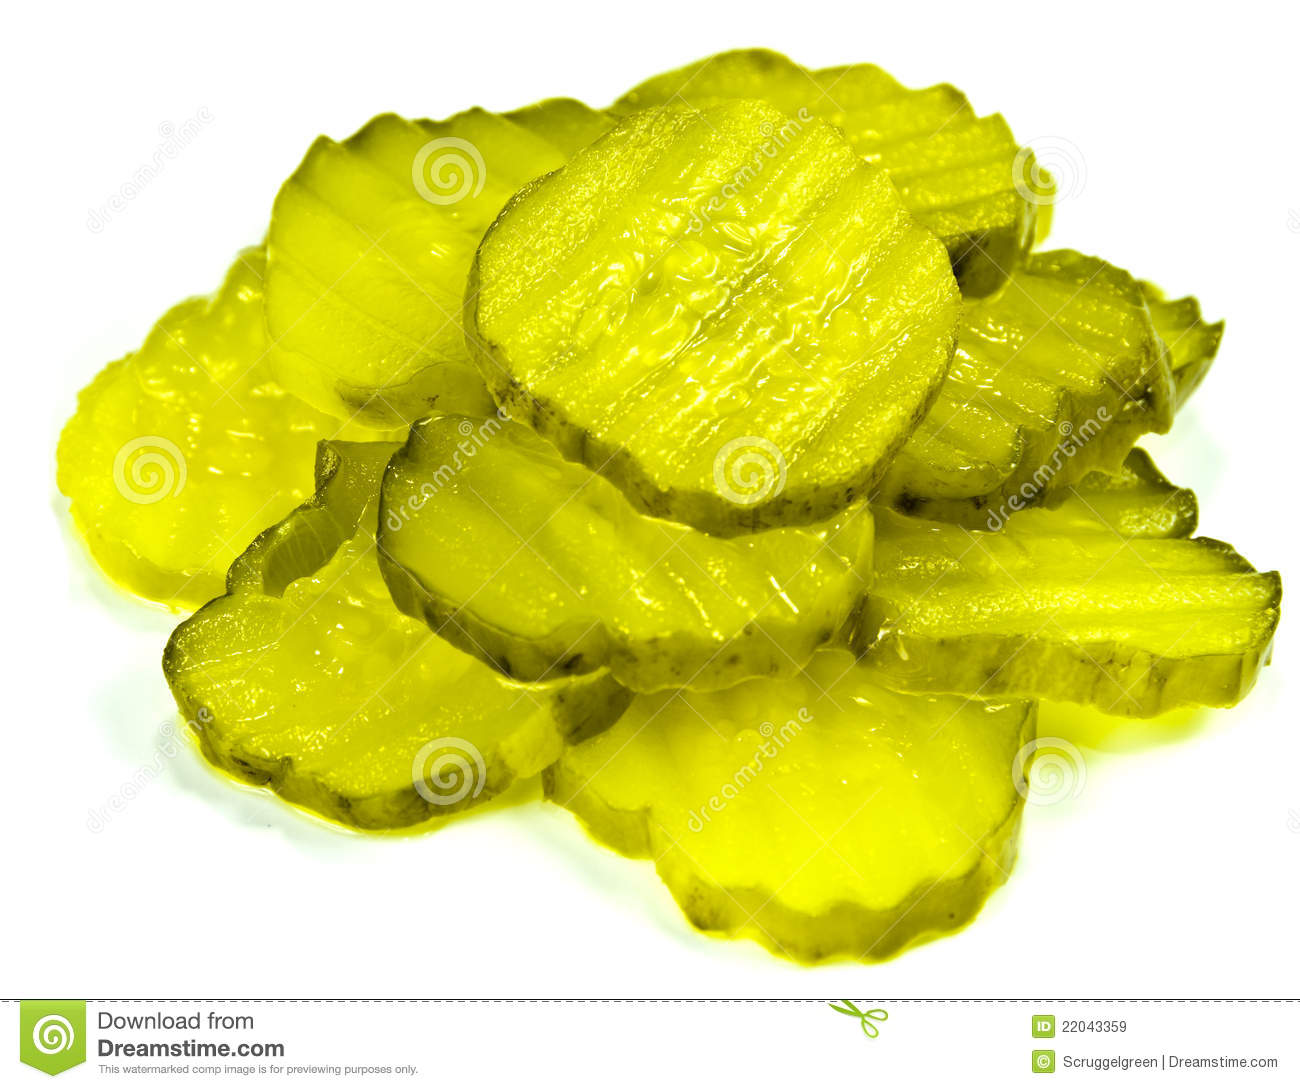 Amazing Pickles Pictures & Backgrounds